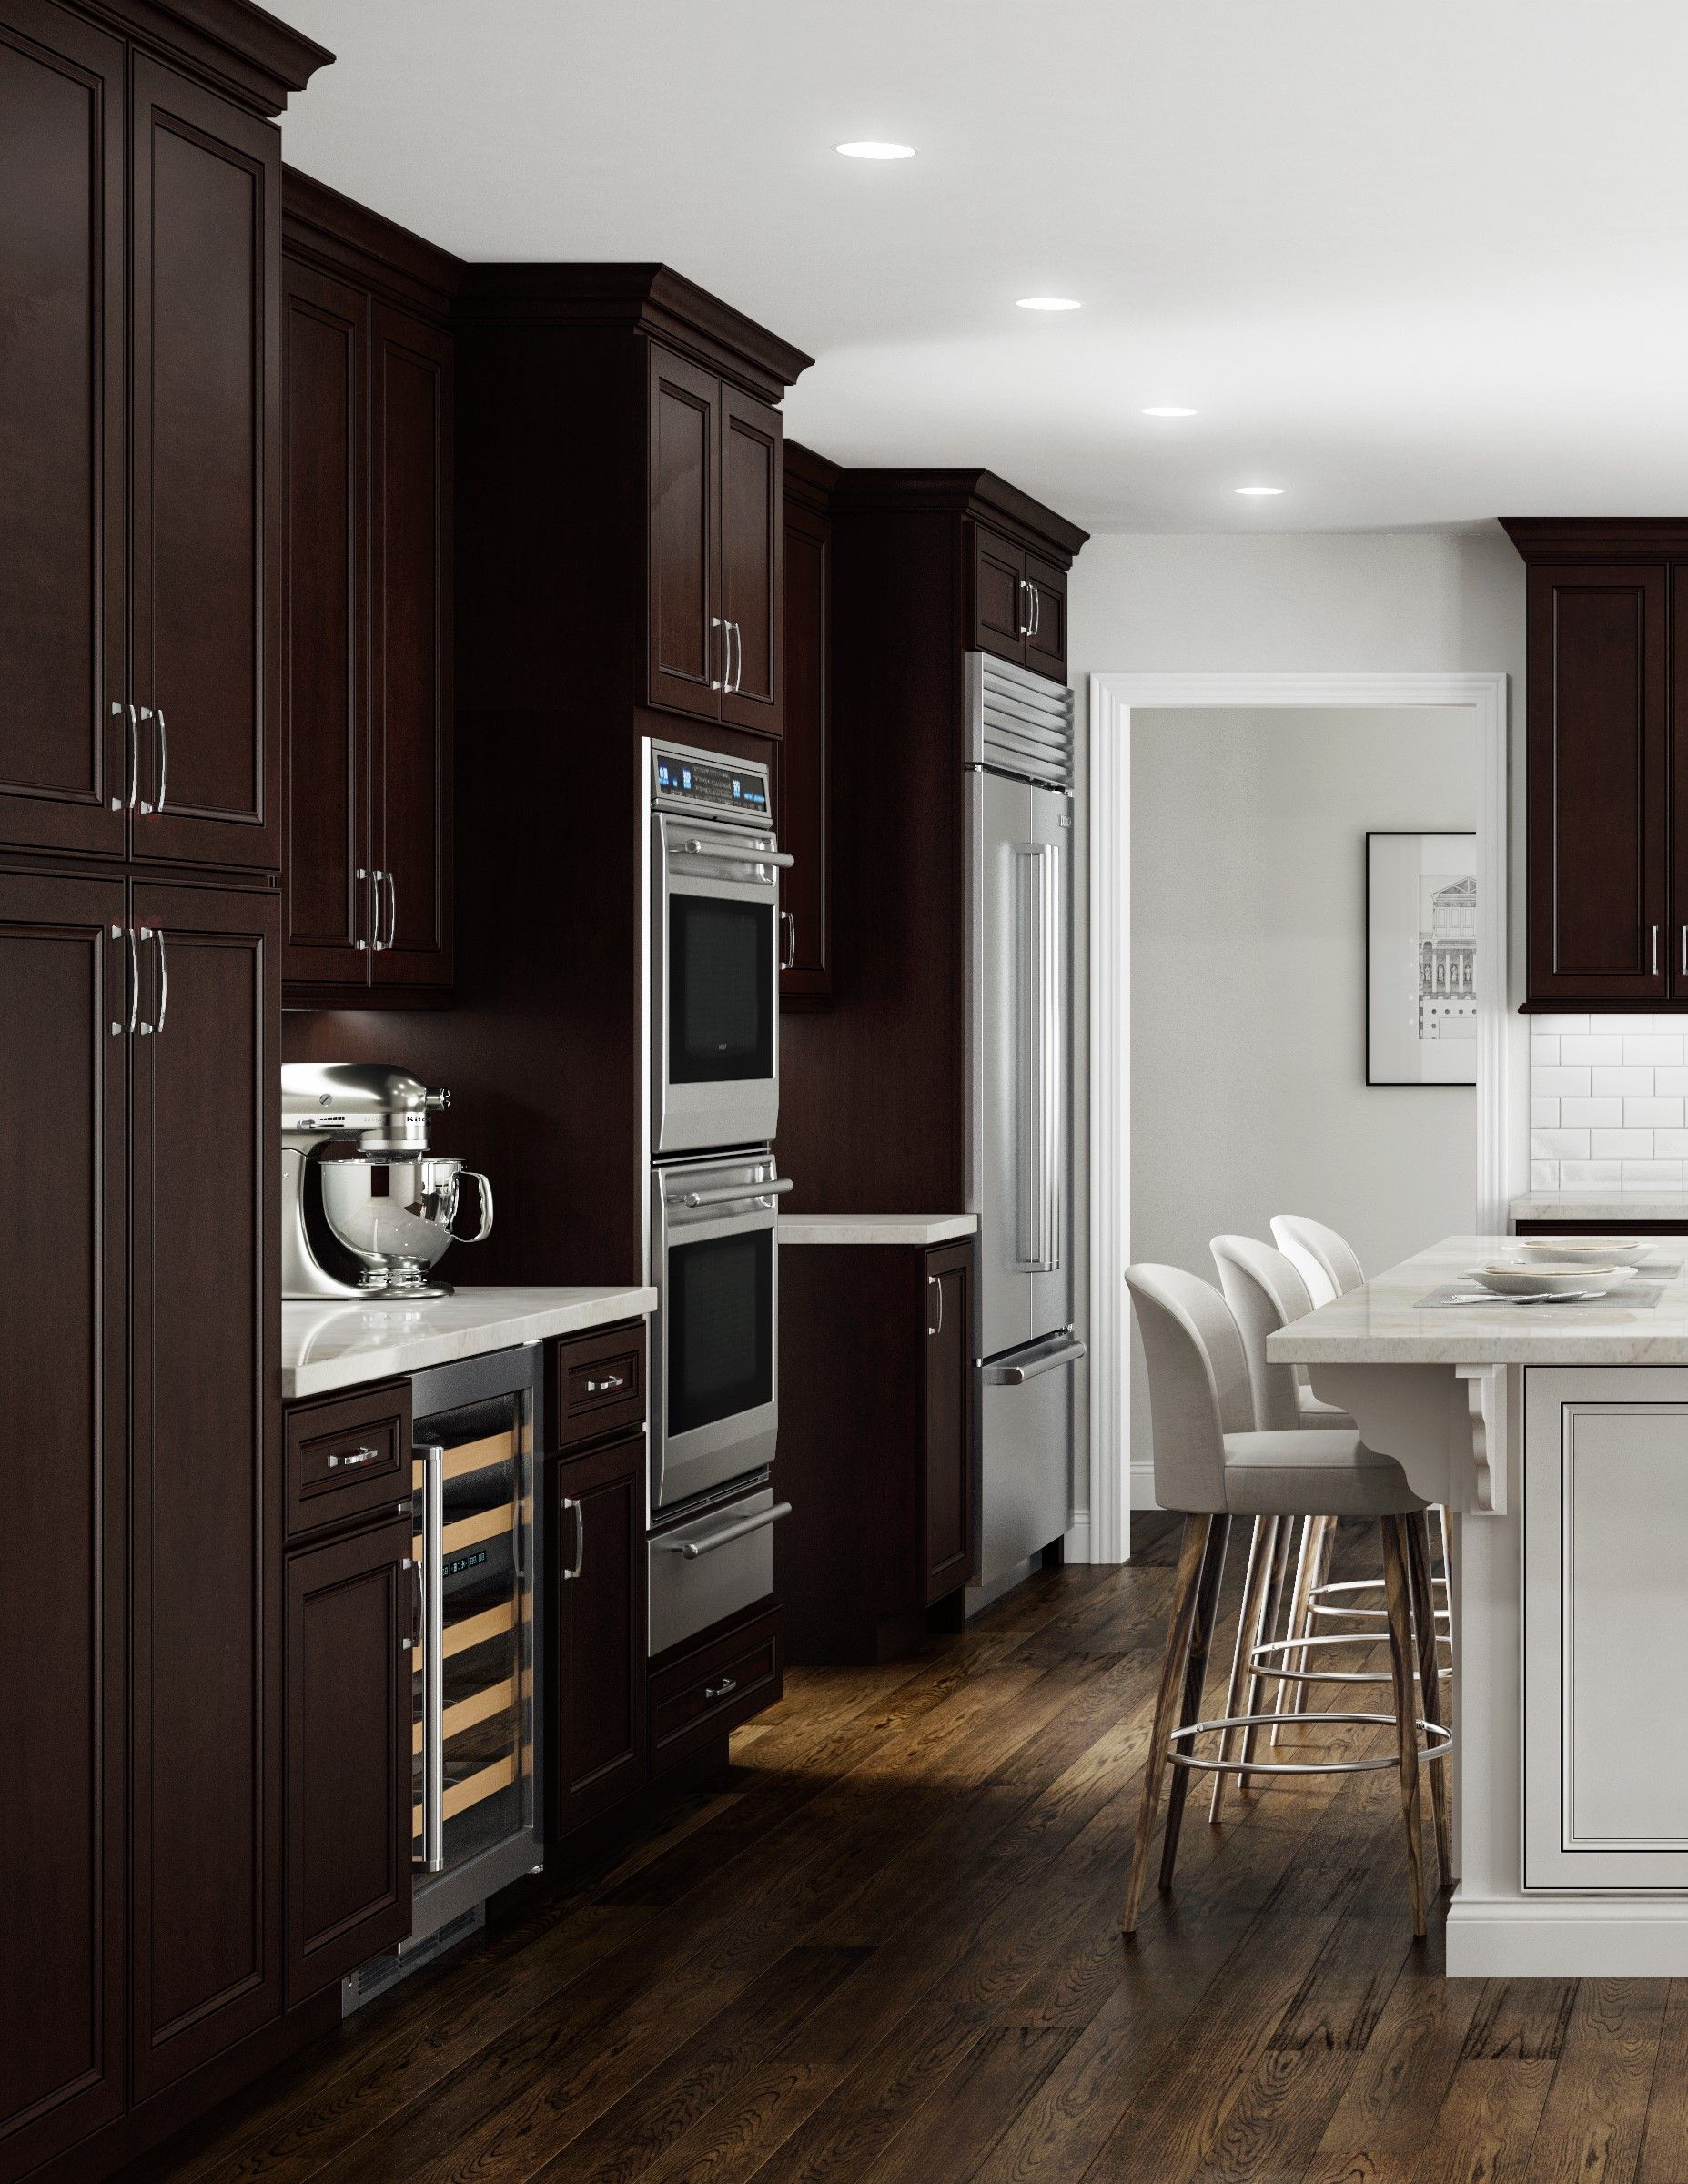 York Chocolate Cabinets Up To 50 Off Cabinetry At Lily Ann Cabinets Assembled Kitchen Cabinets Kitchen Cabinets Wholesale Kitchen Cabinets